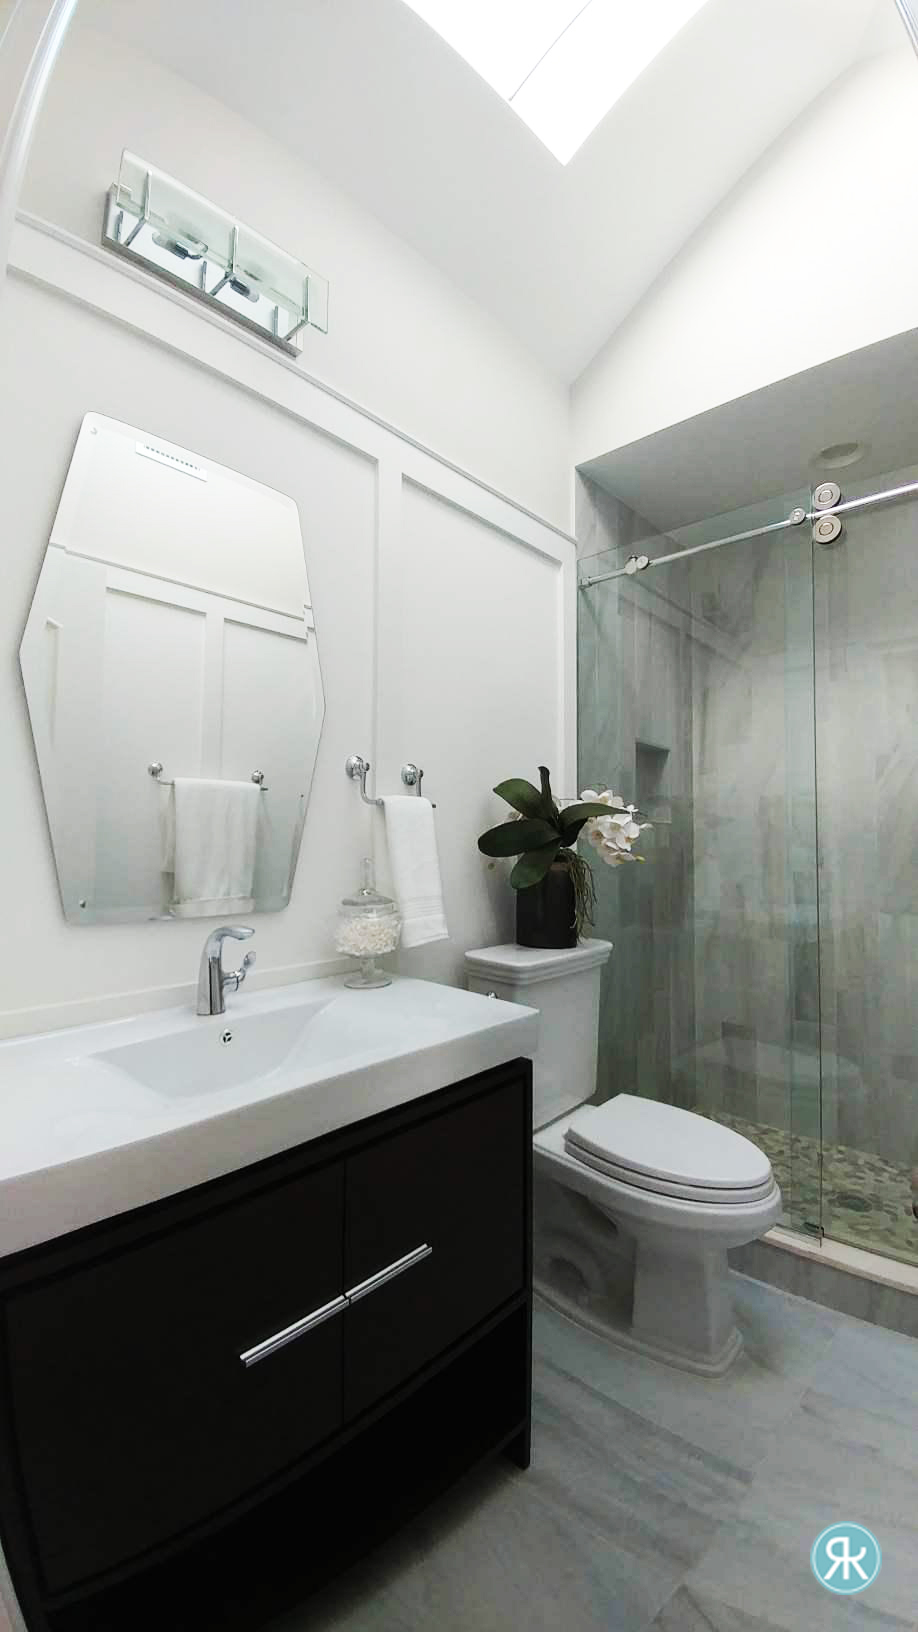 Bathroom-BlackandWhite-Minimal-Modern-Chic-Skylight-Mirror-Glass-Shower-Black-Vanity-Chrome-Charm-Wainscoting-Detail-InteriorDesign-Inpiration-Regina-Kay-Interiors.jpg